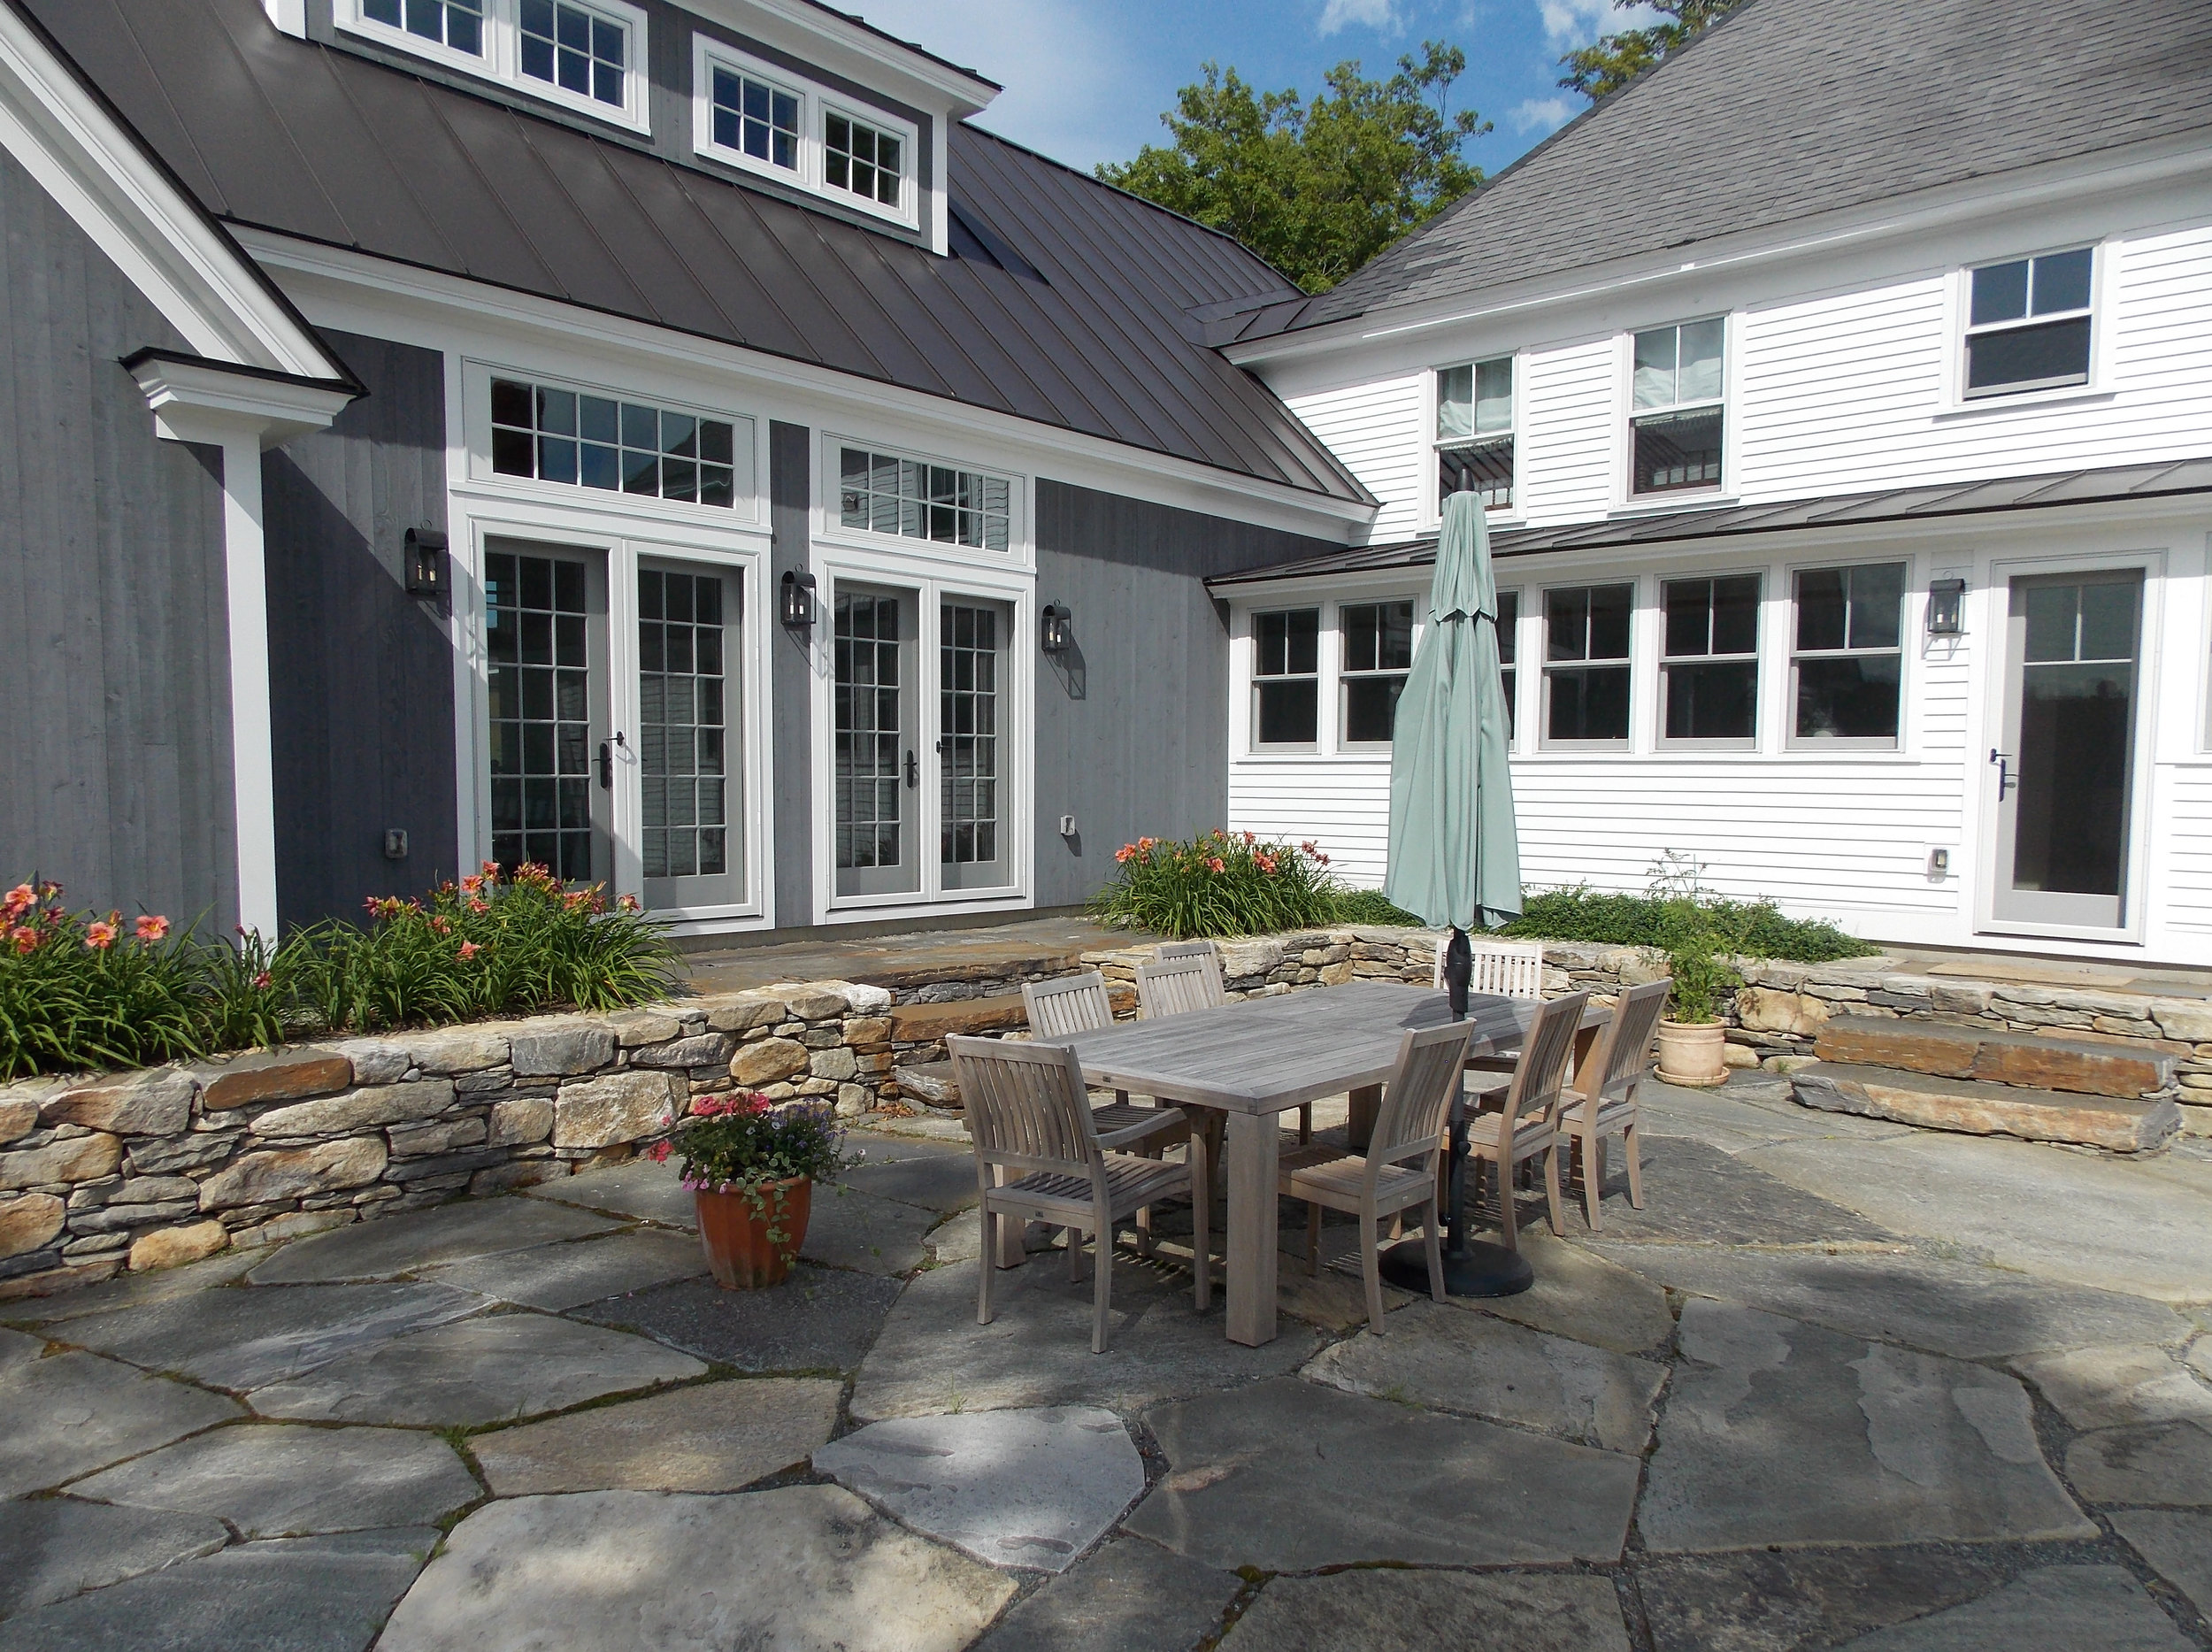 About 1,500 square feet of native Vermont fieldstone was installed for the patios and walkways, including the main terrace at the rear of the property (foreground) and the sunken viewing terrace (background, left). The two spaces are separated by an amsonia hedge and small wall.